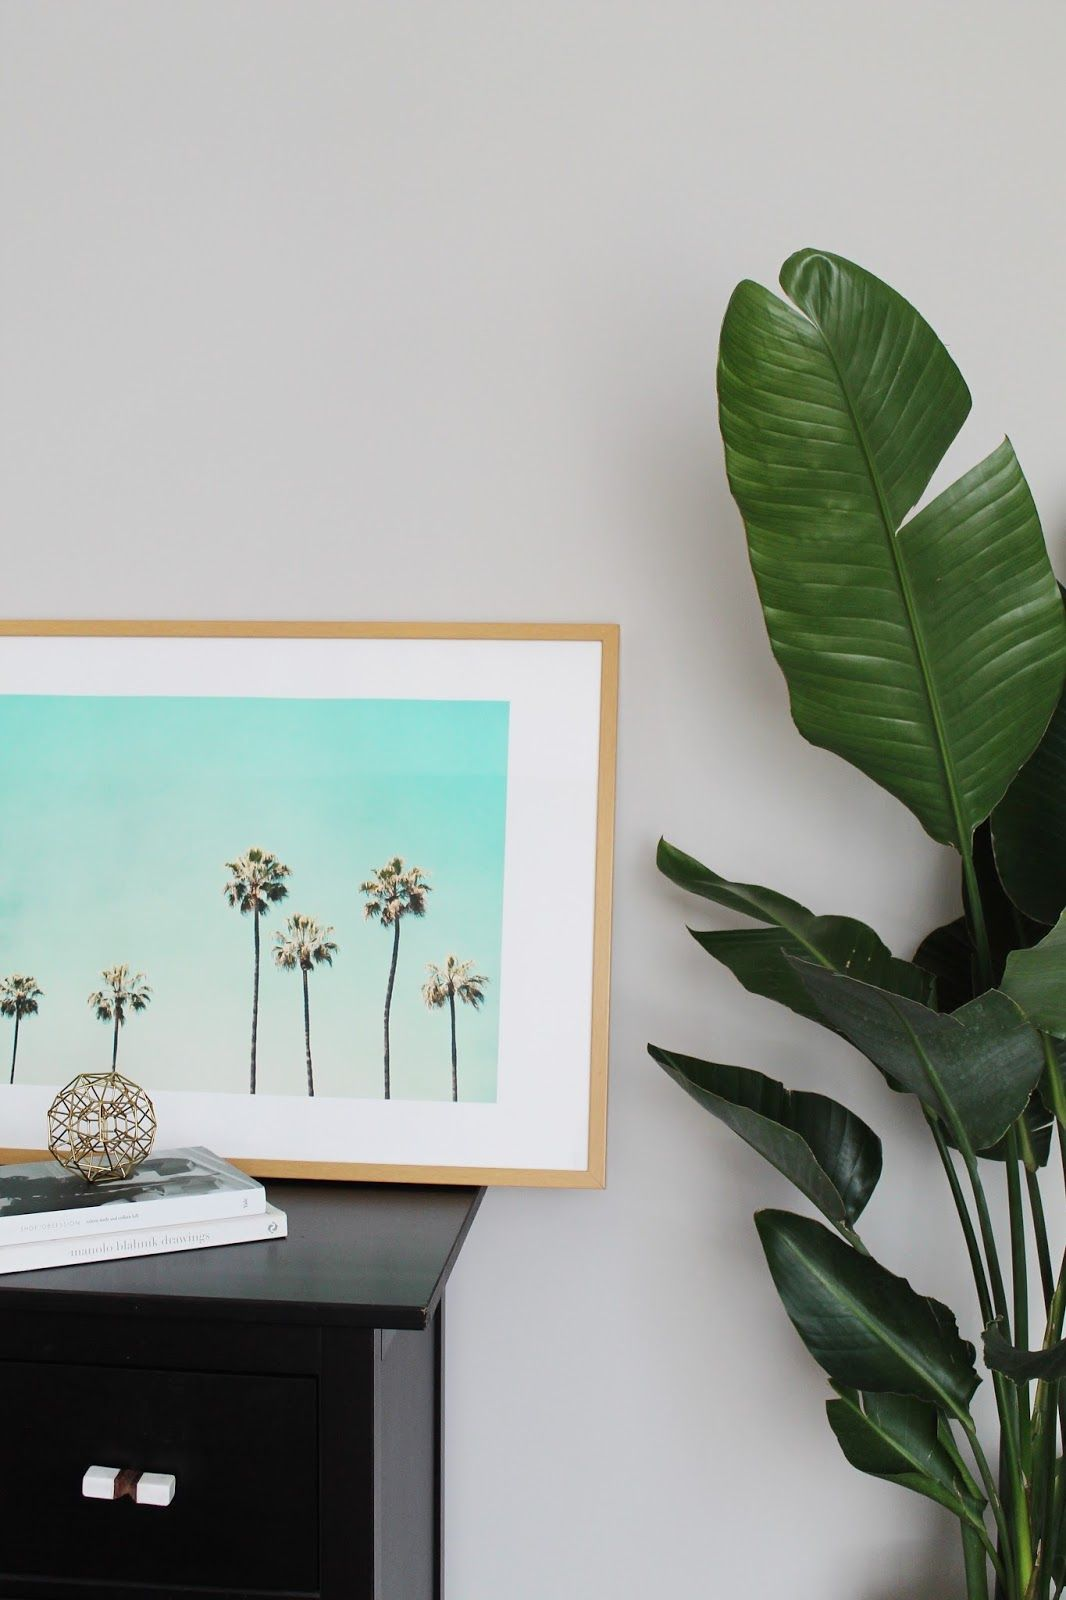 Pflanzen Schlafzimmer Gummibaum Palm Tree Print Framed How To Do Banana Leaf Plant